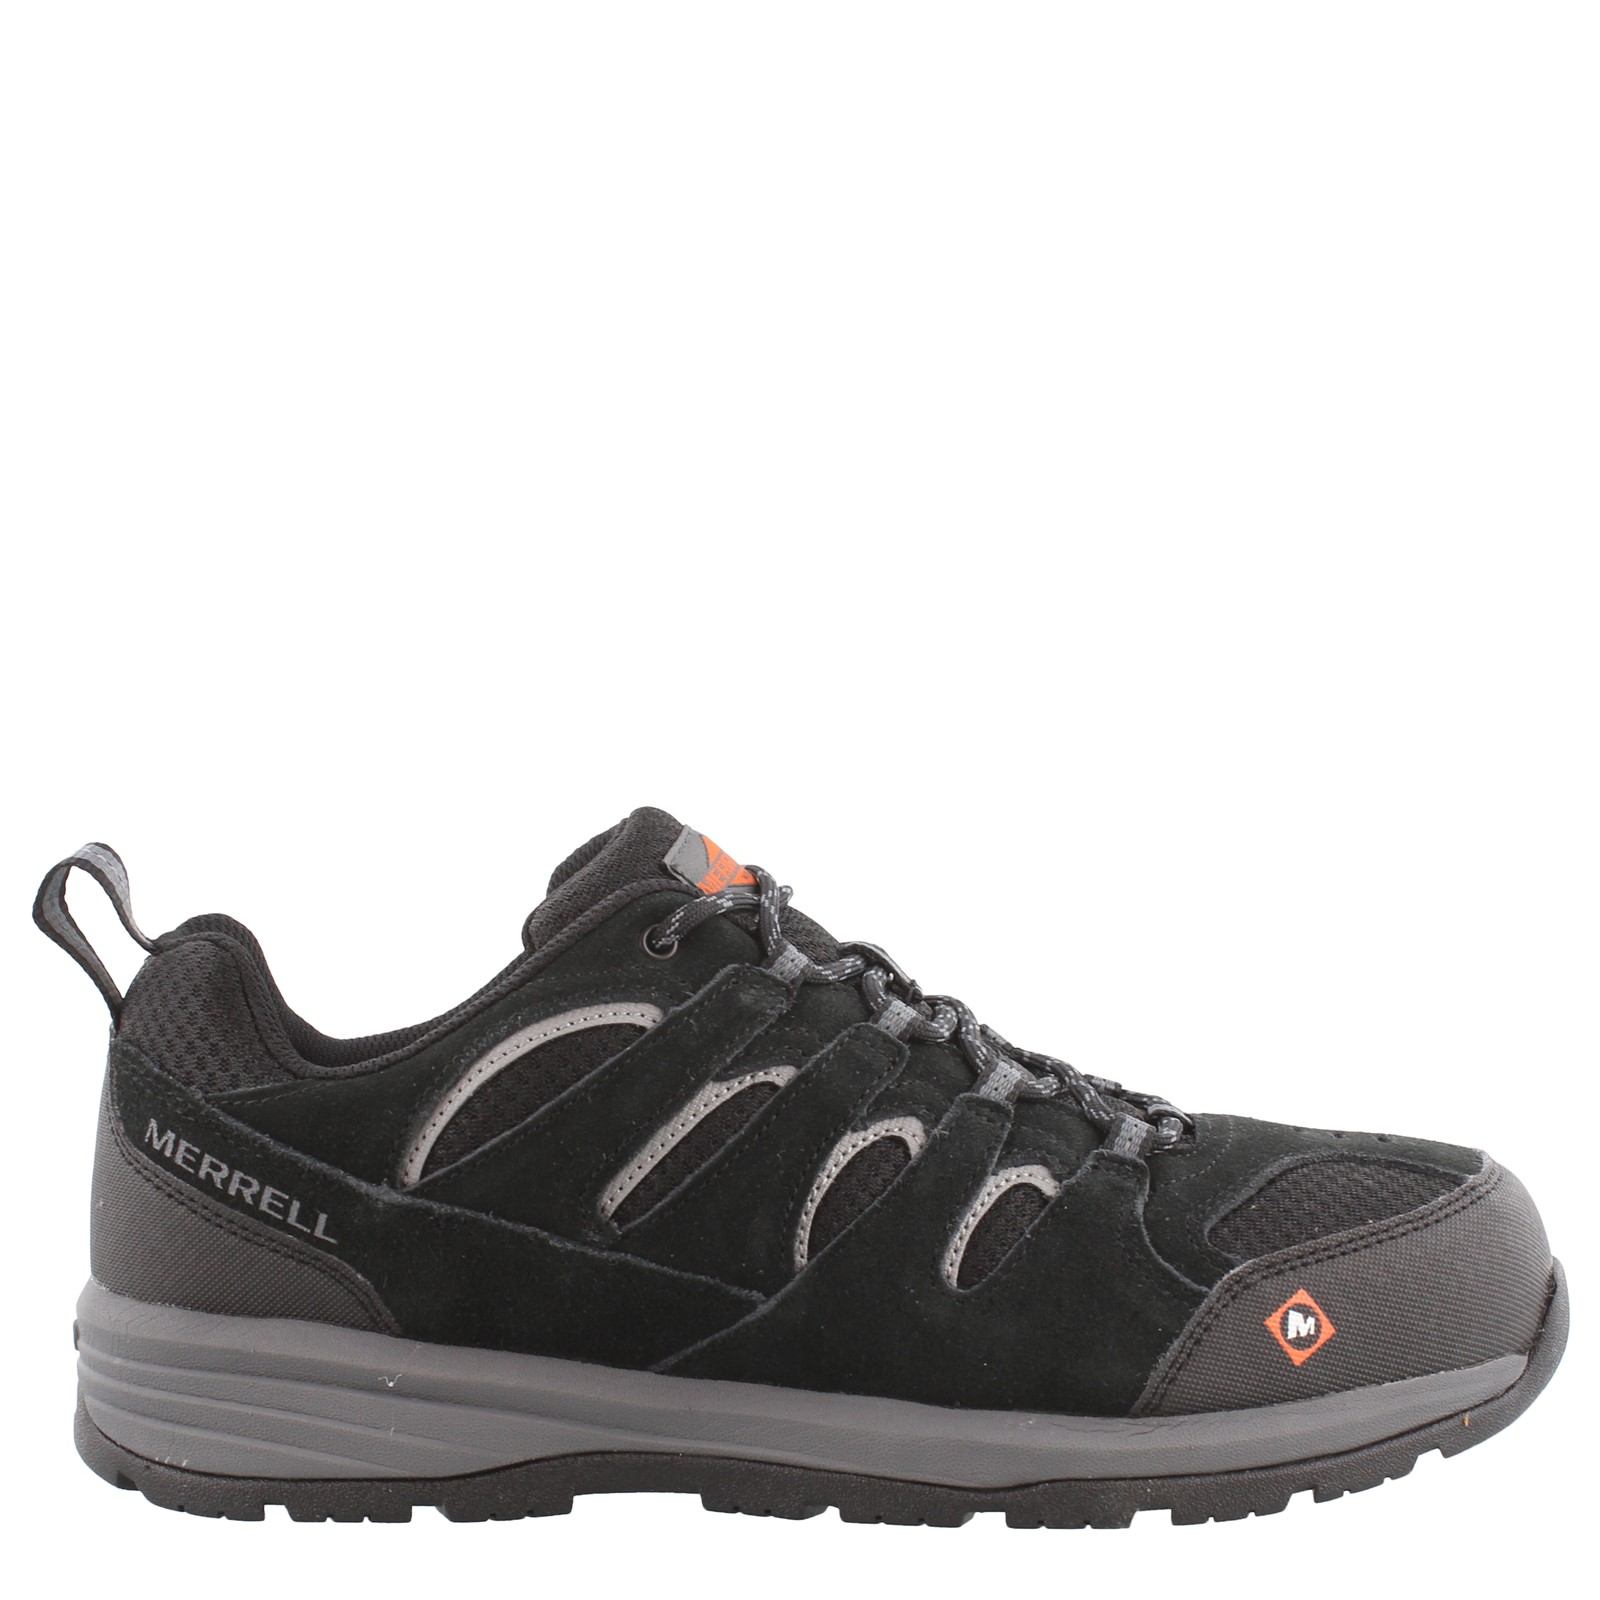 Men's Merrell, Windoc Low Steel Toe Shoes